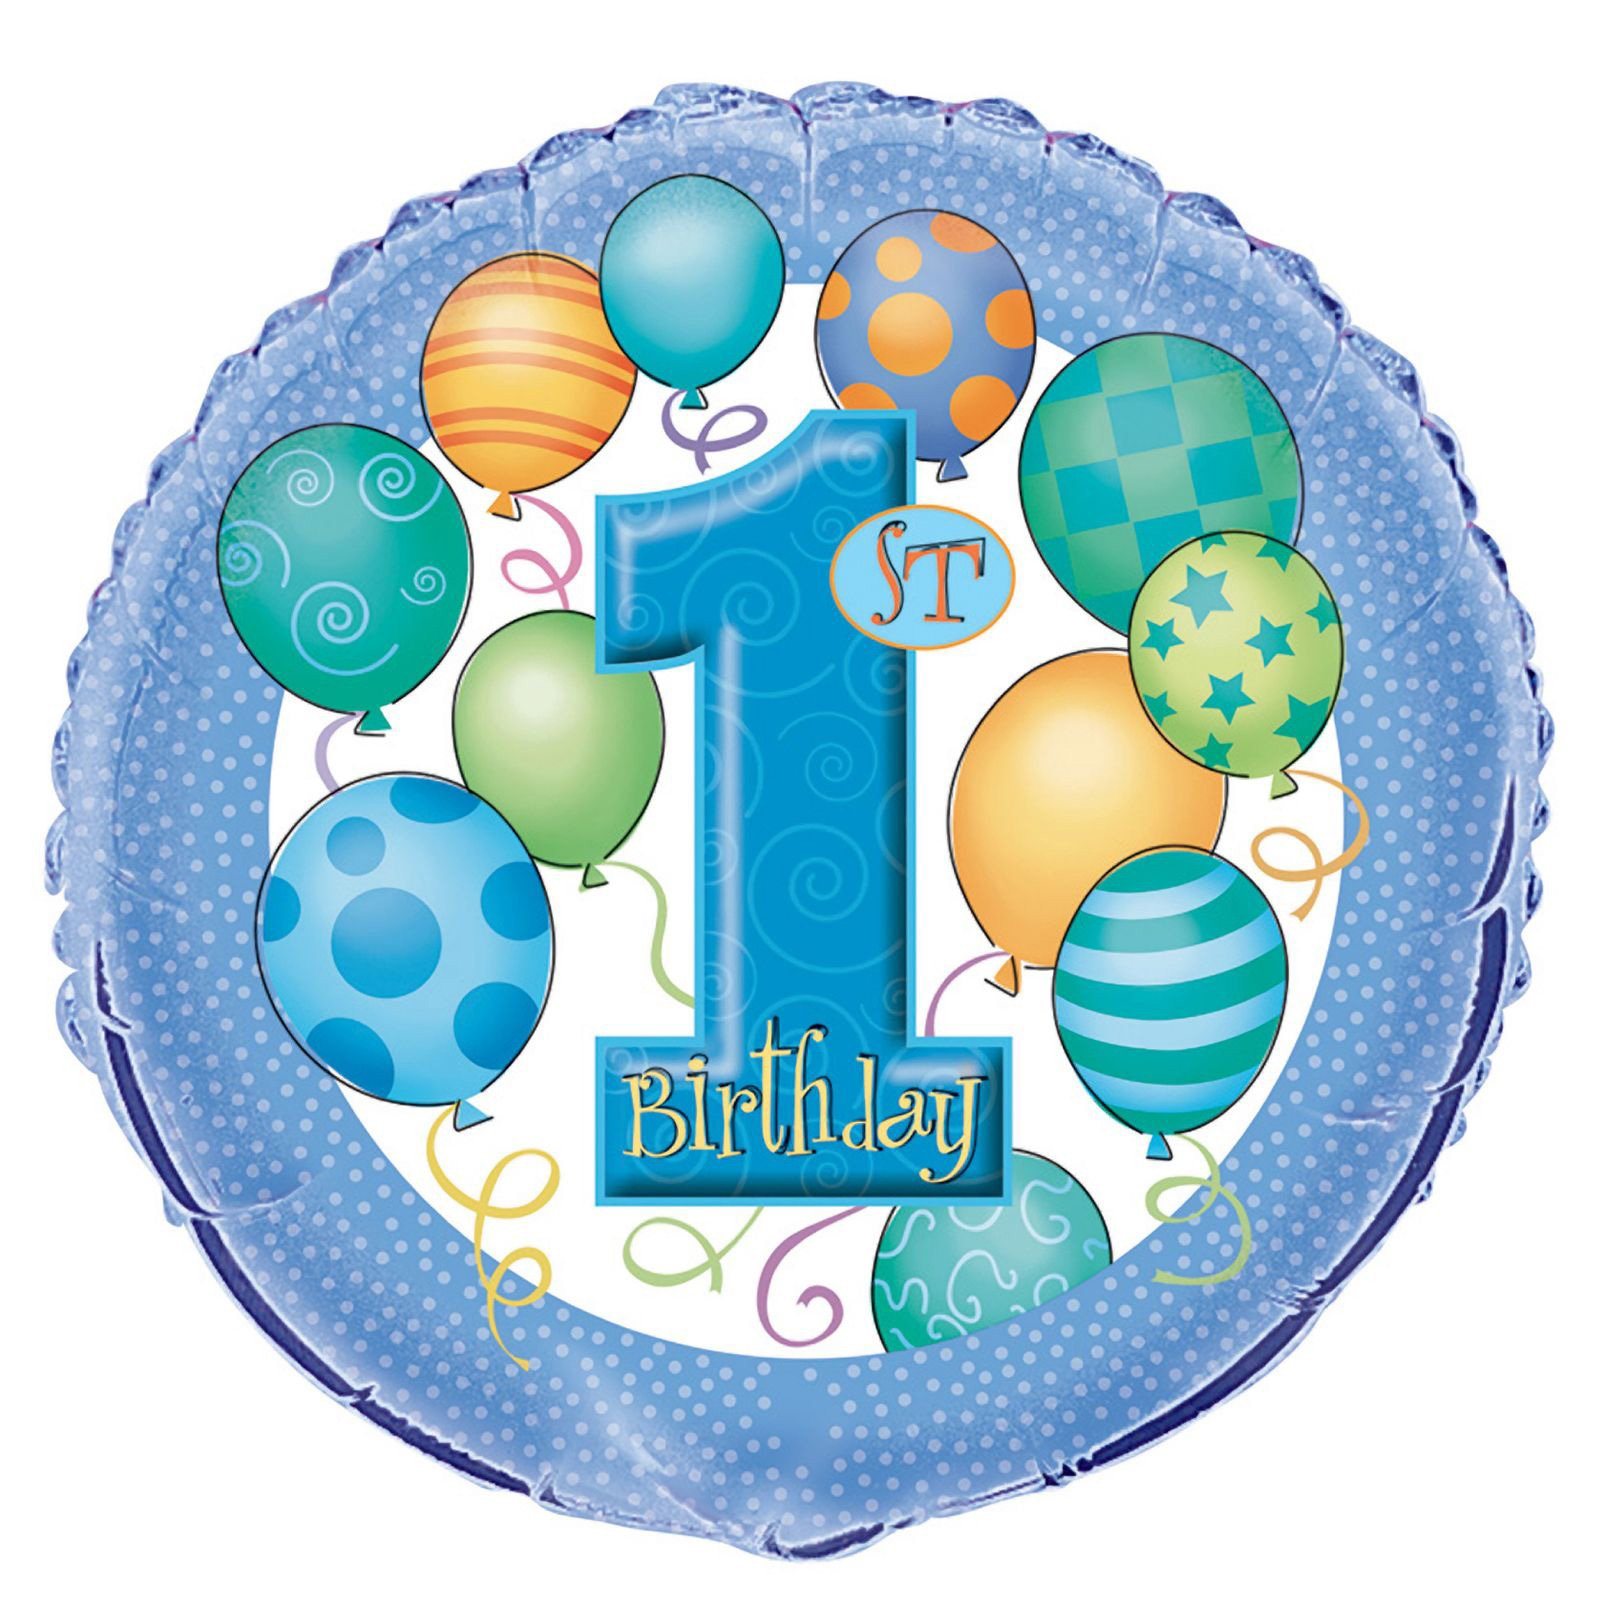 1st Birthday Clip Art - Cliparts.co